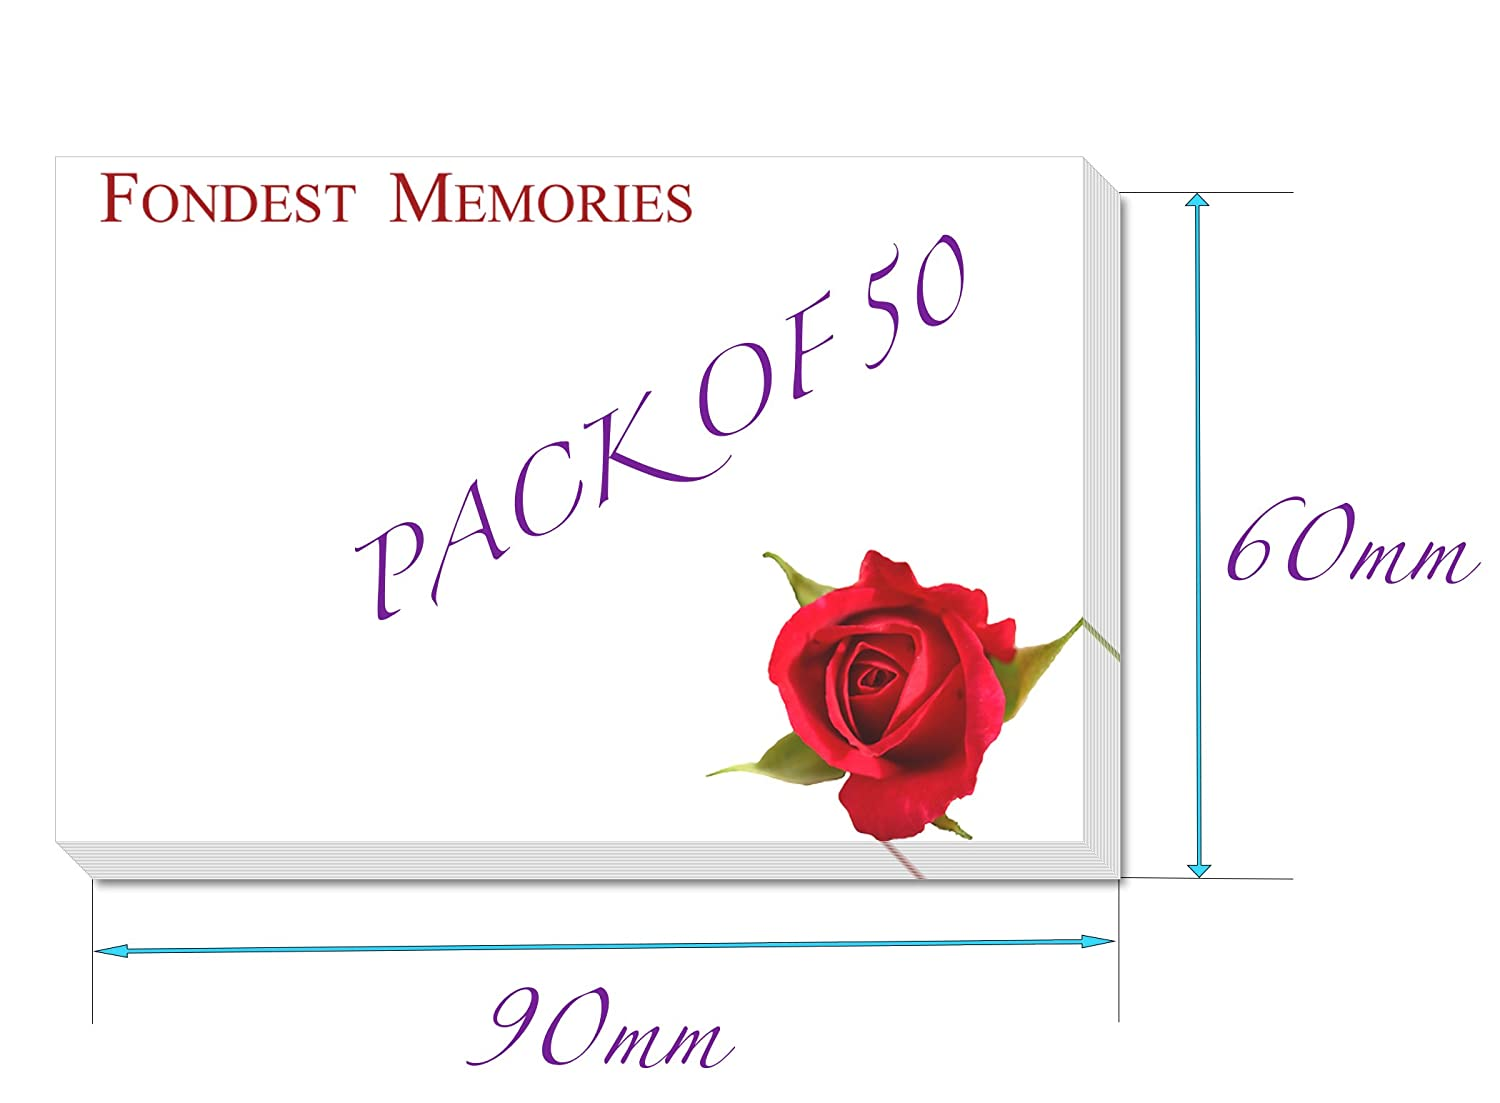 Fondest memories floristry message sympathy cards flowers and floral fondest memories floristry message sympathy cards flowers and floral tributes for funeral and any other occasion izmirmasajfo